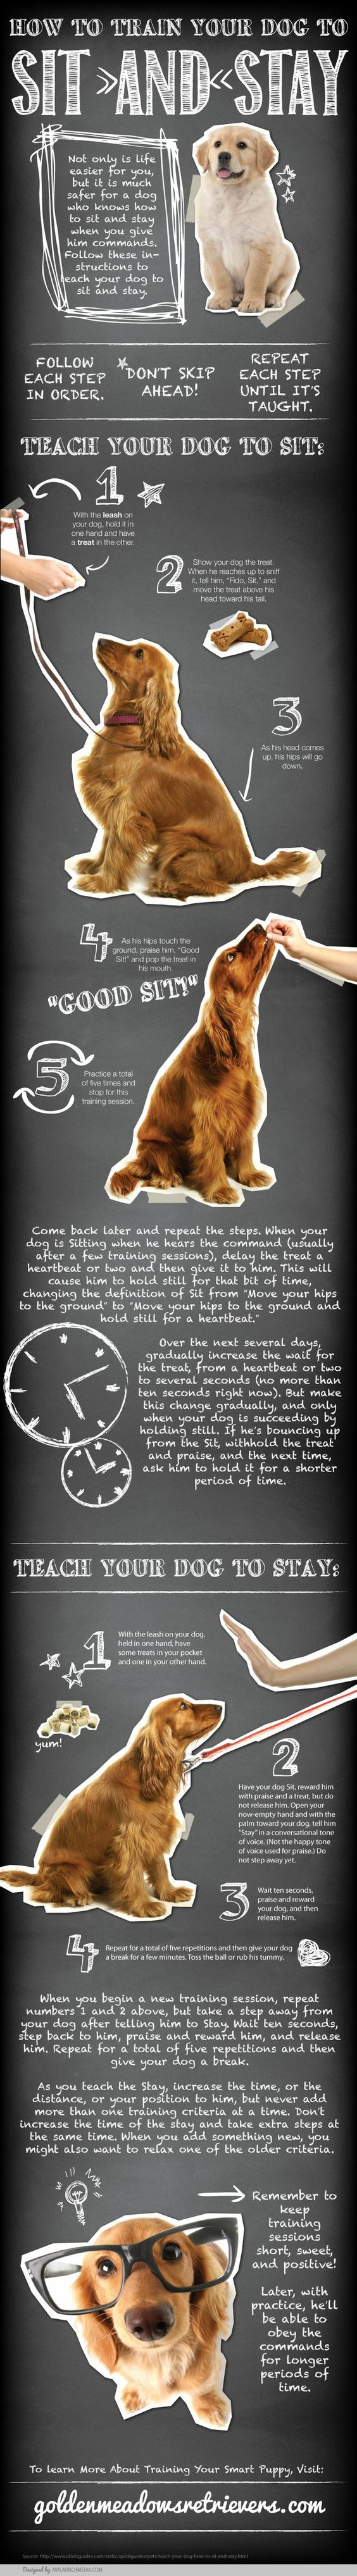 [Infographic] Teach Your Dog to Sit and Stay - http://www.pawsforpeeps.com/sitandstay/: